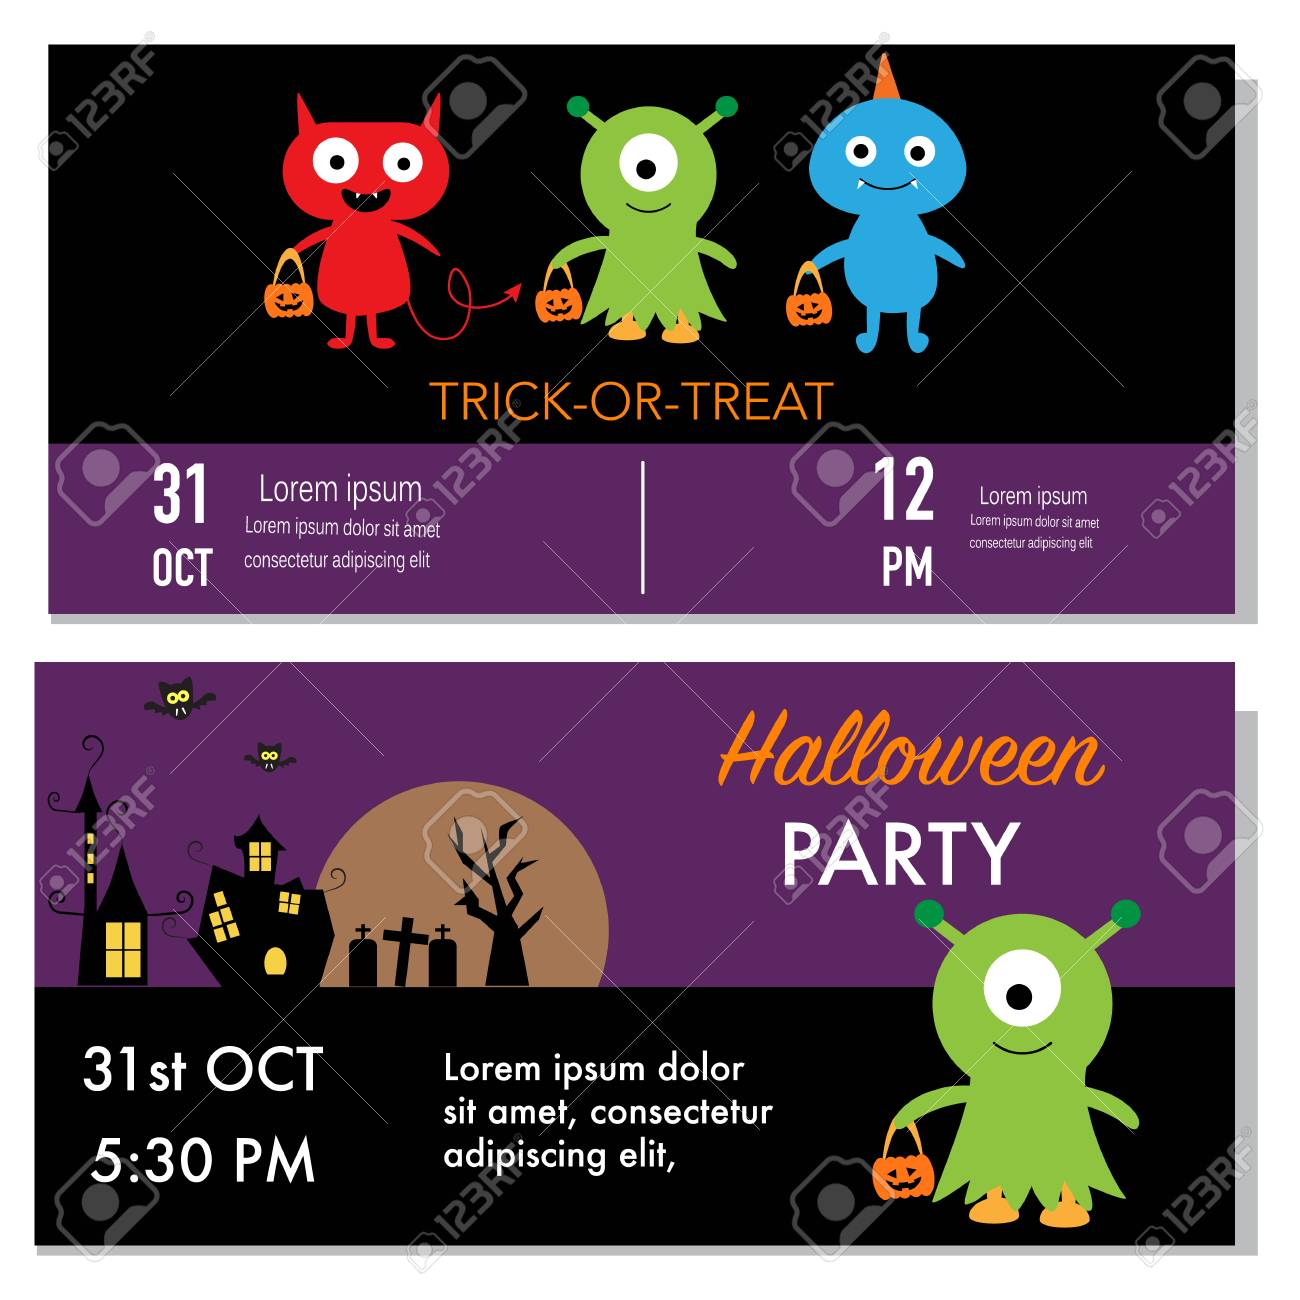 Halloween party invitation cards monster character royalty free halloween party invitation cards monster character stock vector 46958842 stopboris Images